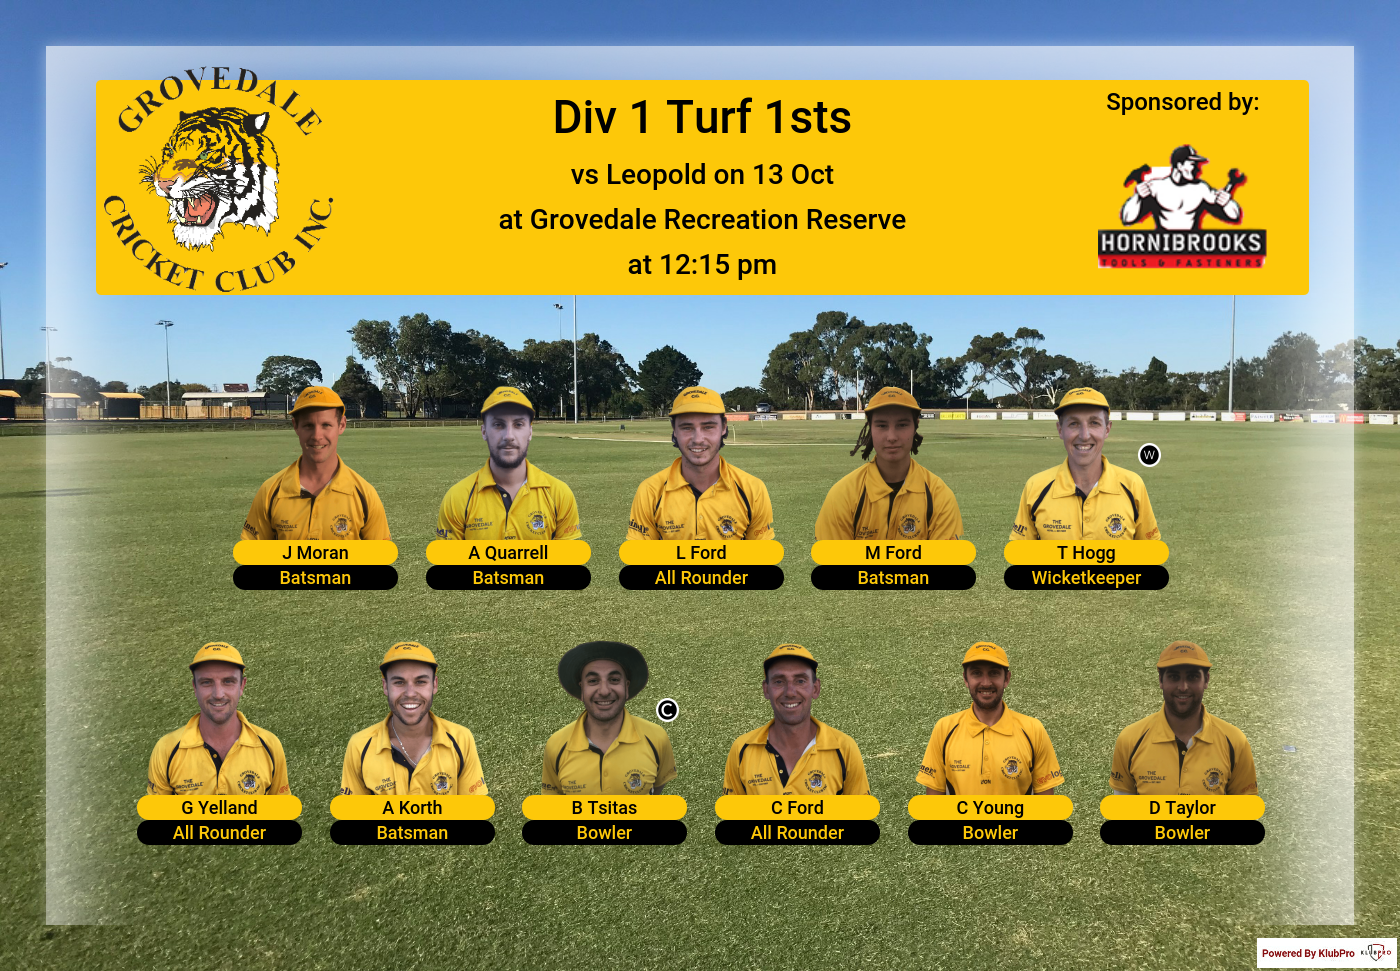 lineup-Div 1 Turf 1sts-Round-2-1539312416783.png